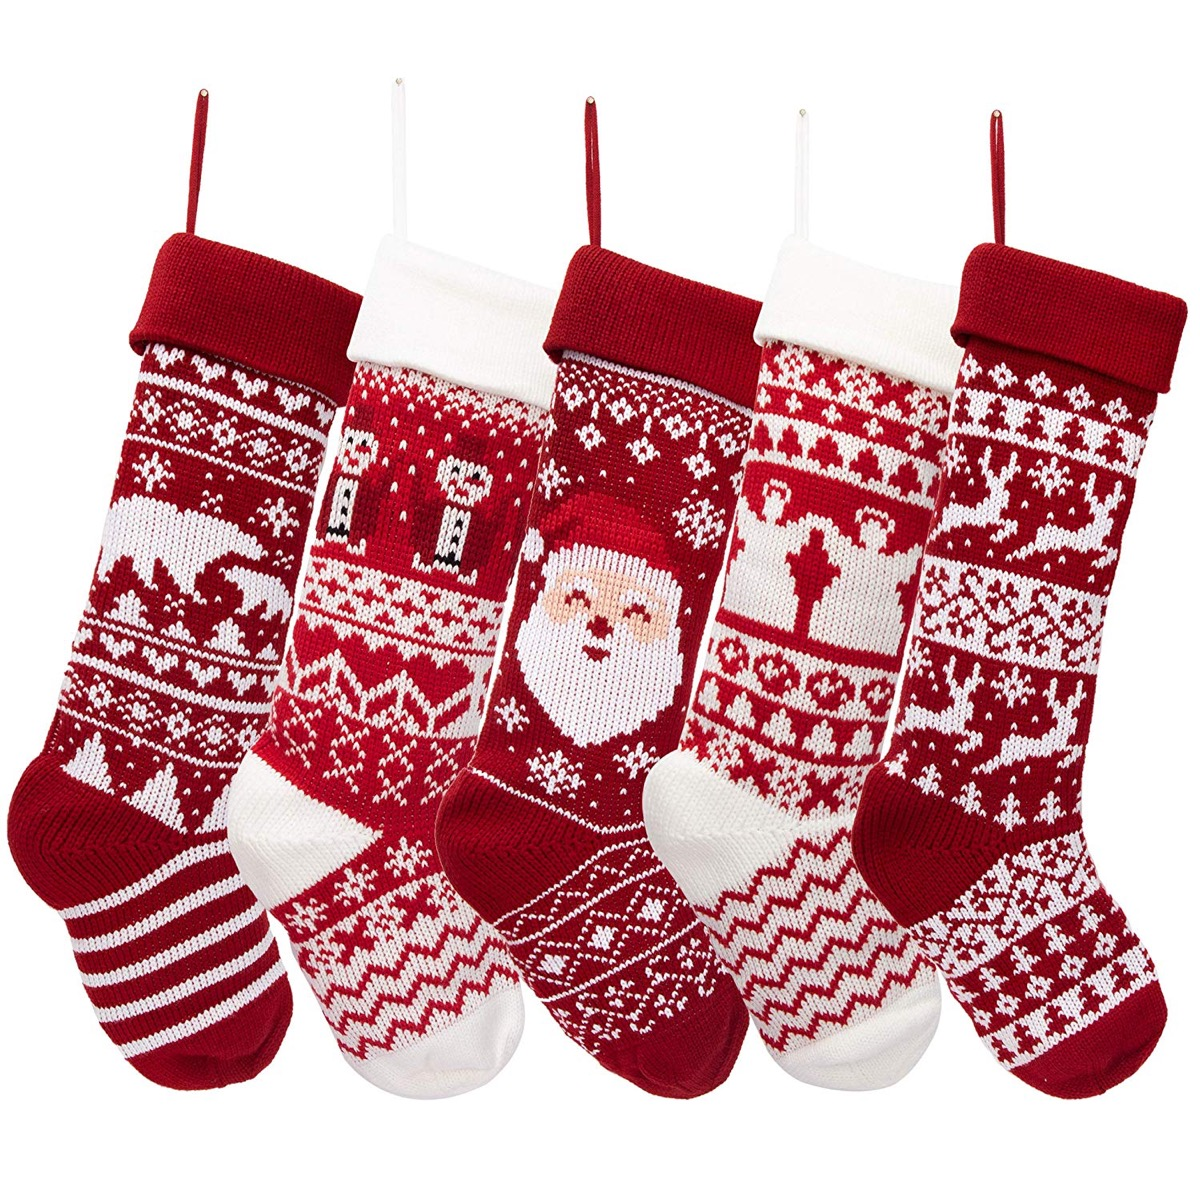 red and white knit christmas stockings